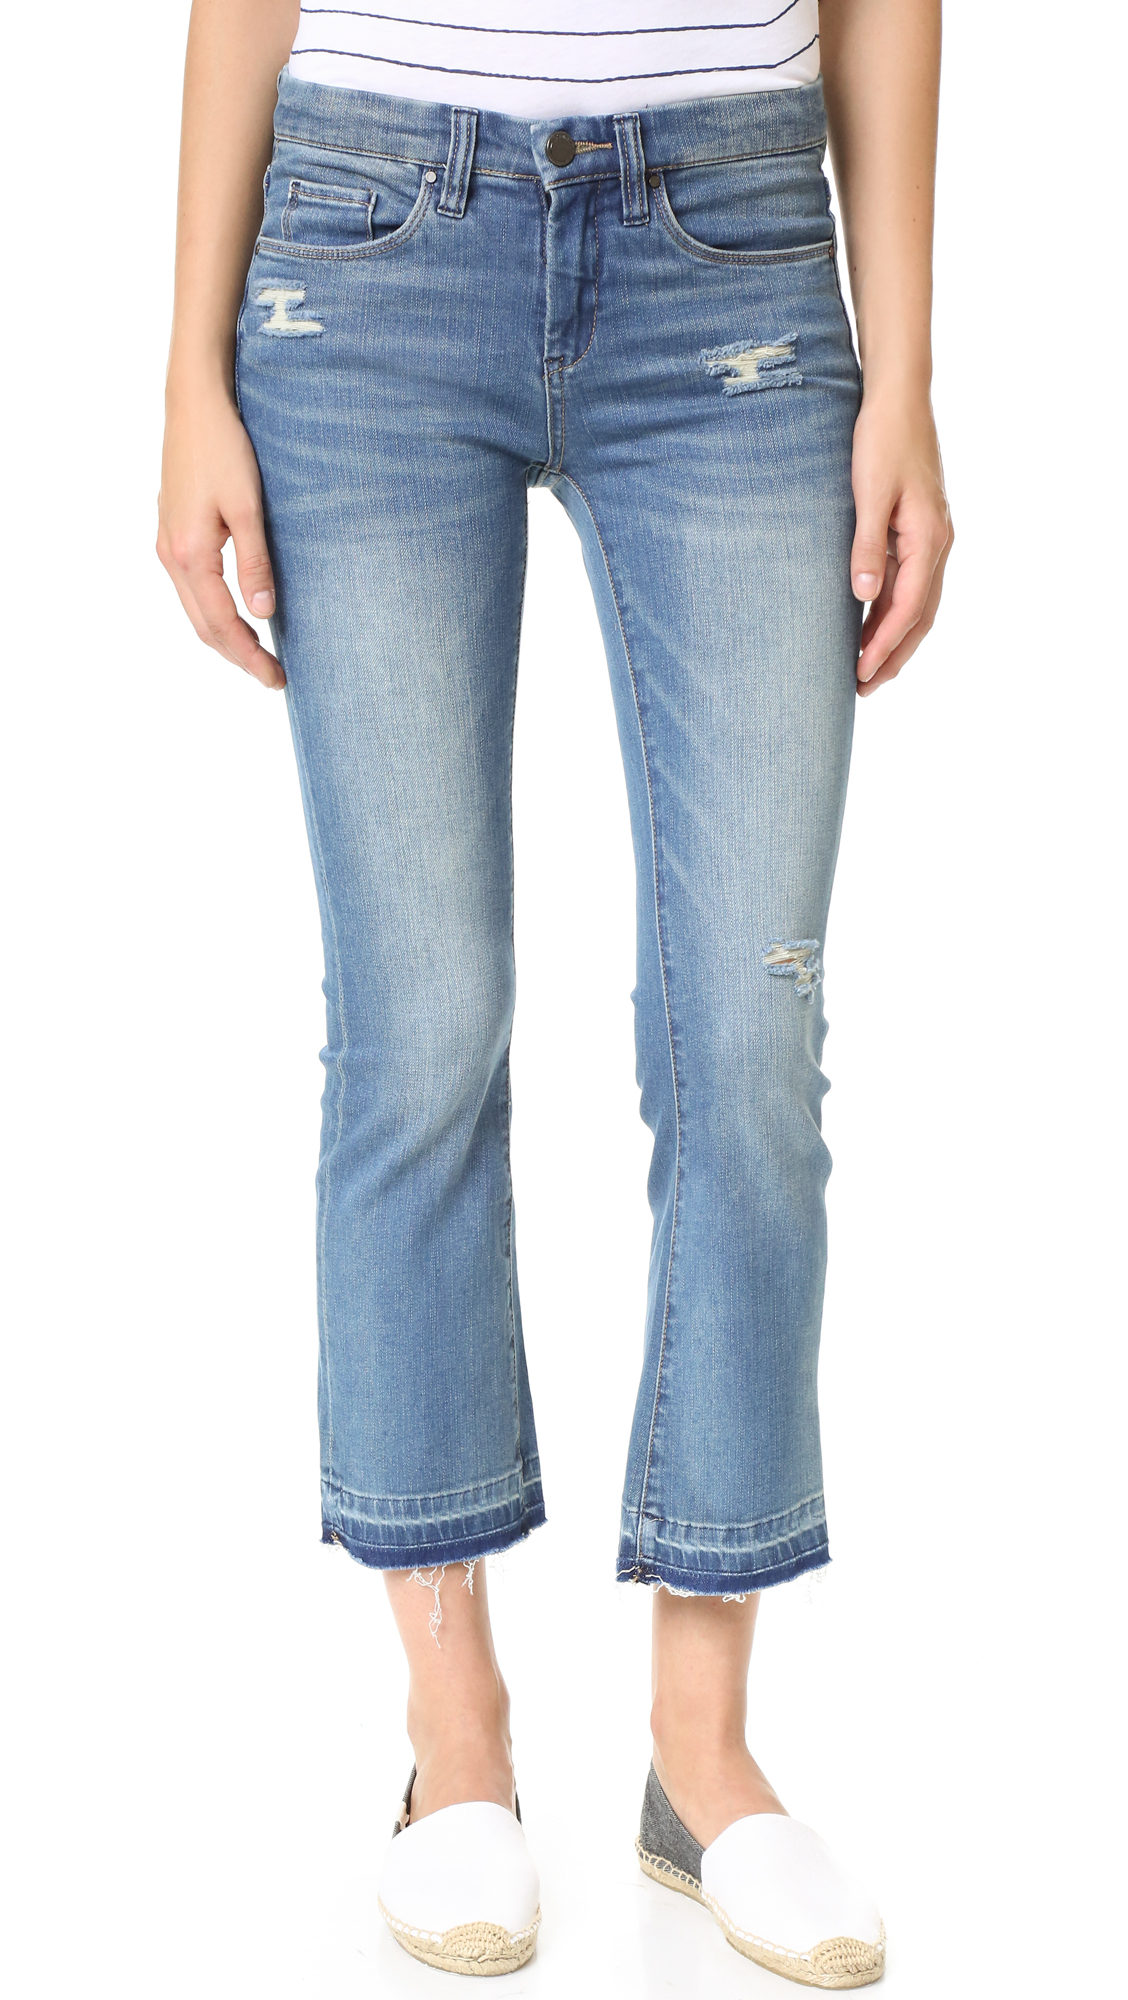 Shredded spots and a frayed, overdyed hem give these Blank Denim jeans a deconstructed look. Worn edges. 5 pocket styling. Button closure and zip fly. Fabric: Lightweight stretch denim. 97% cotton/3% spandex. Wash cold. Imported, China. Measurements Rise: 9